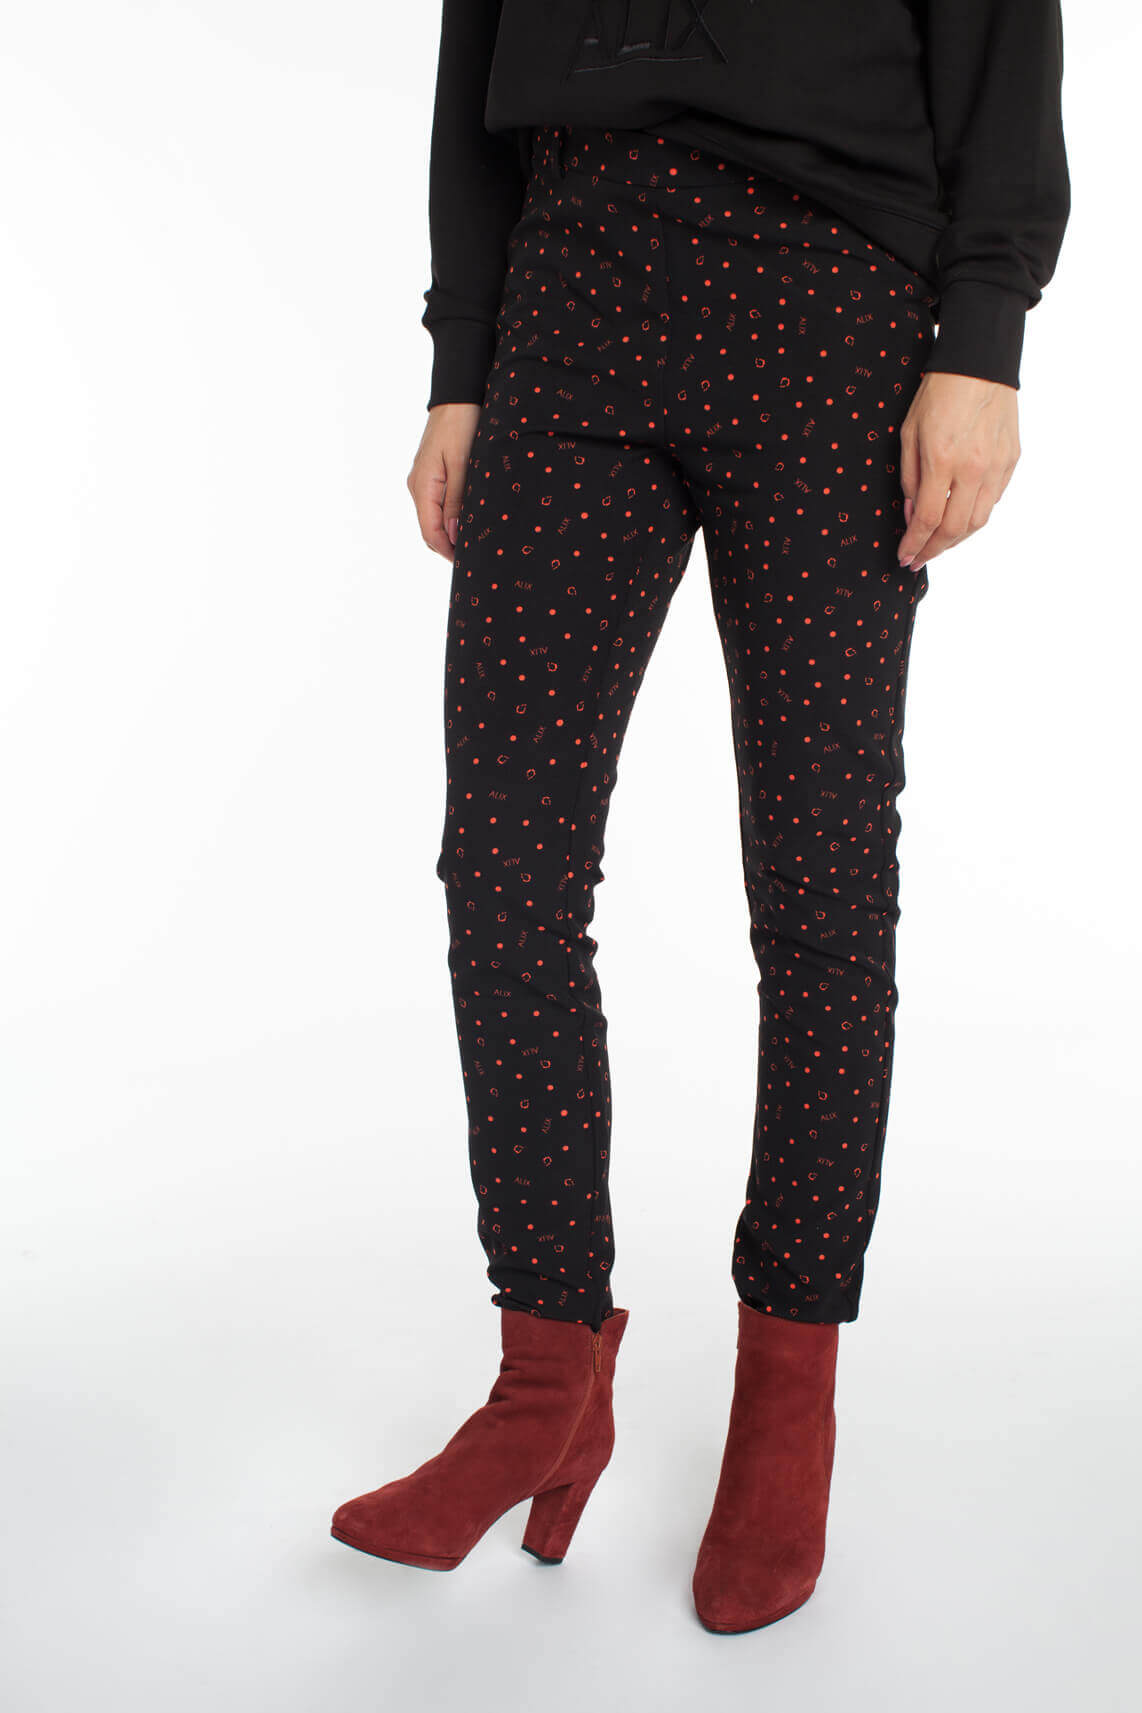 Alix The Label Dames Pantalon met print zwart